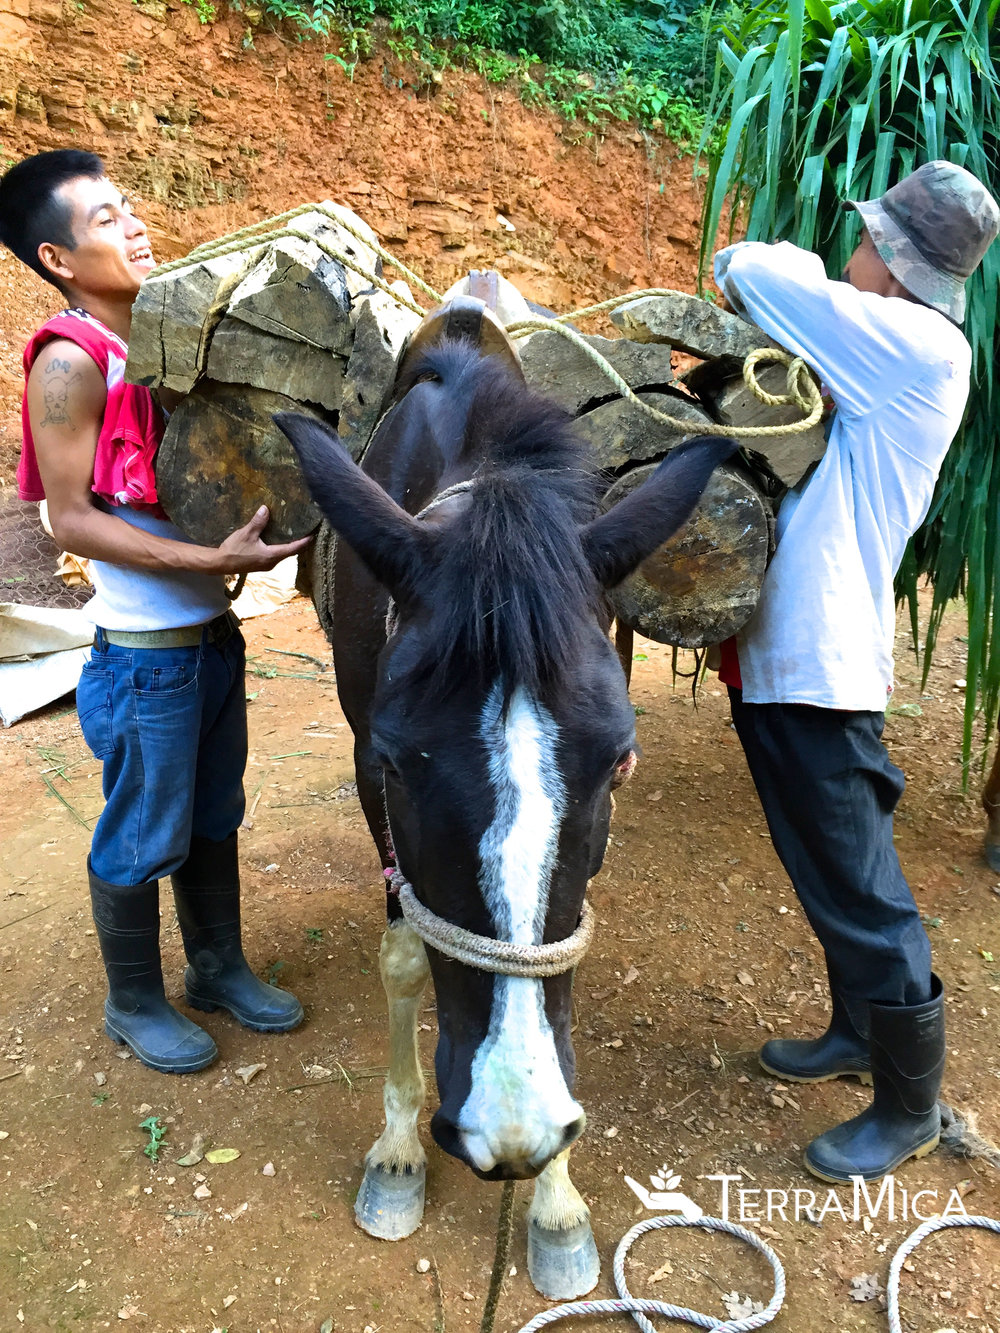 Ladisloa and his son packing up their new horse for the day's work.